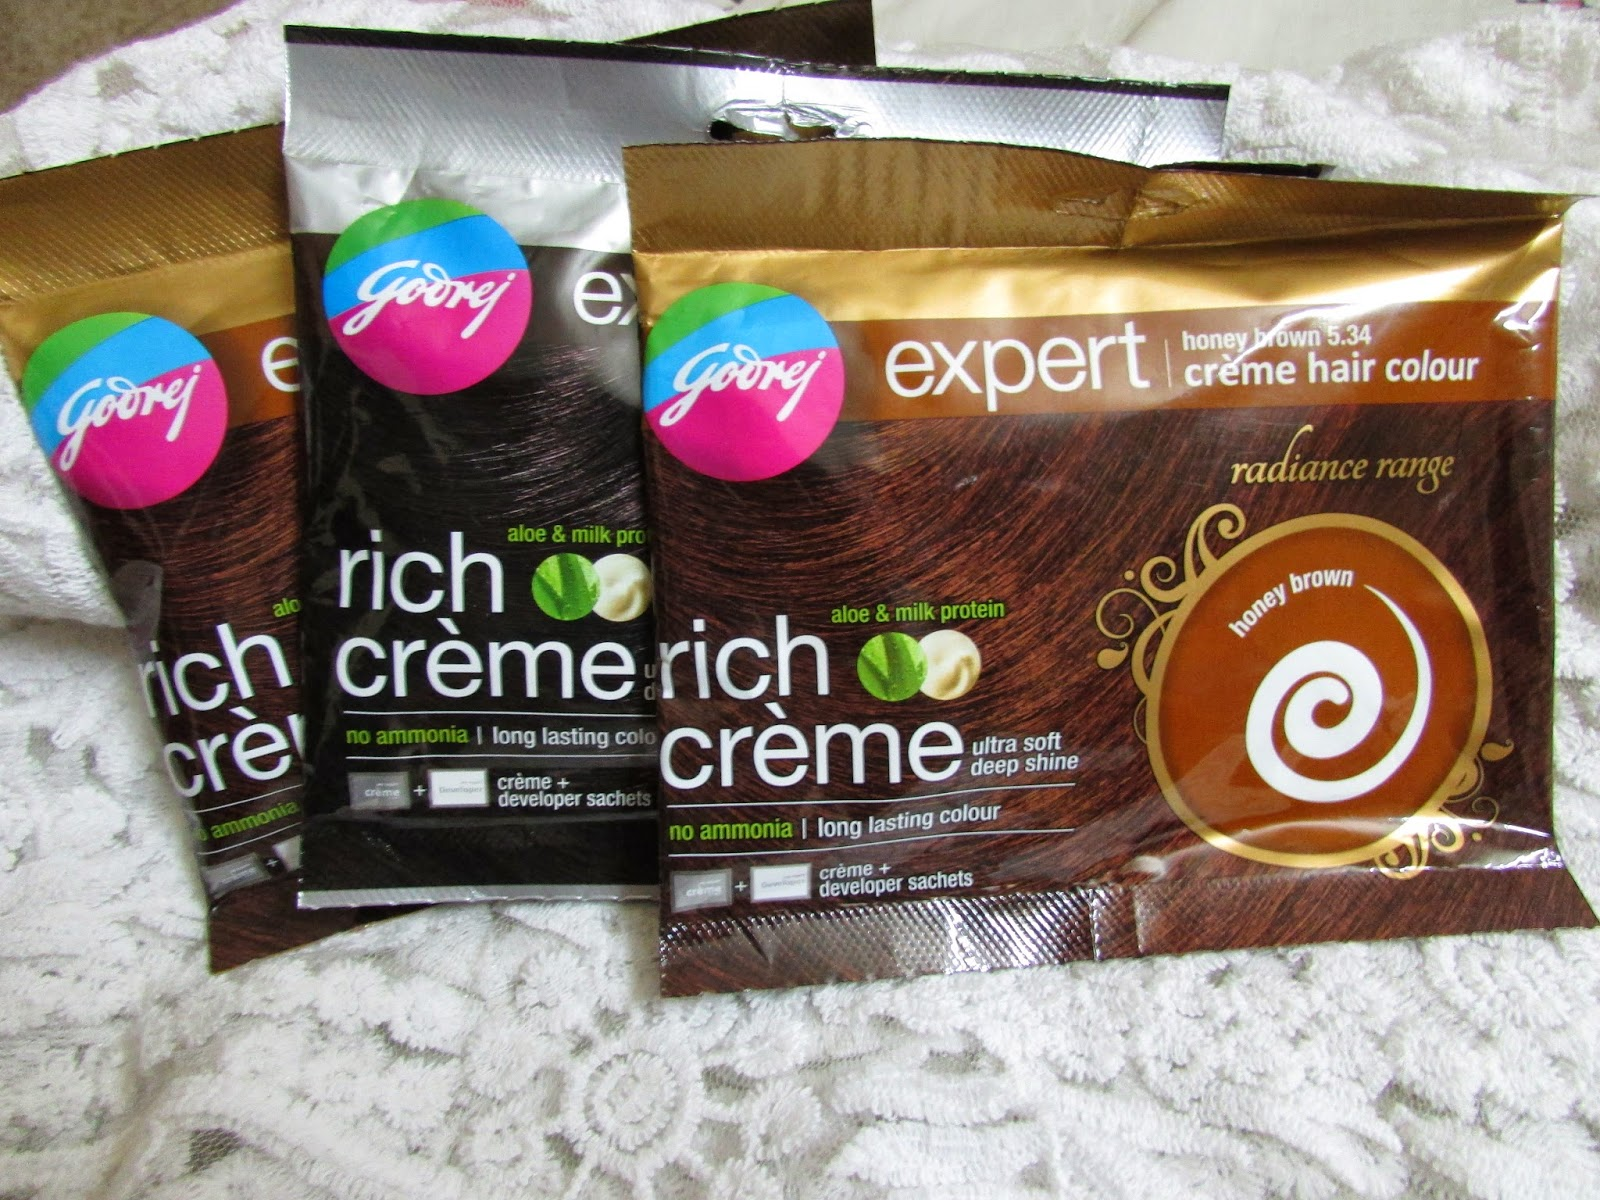 godrej expert rich creme hair colour, godrej expert rich creme hair colour  review, godrej expert rich creme hair colour price, godrej expert rich creme hair colour online, godrej expert rich creme hair colour india, ammonia free hair color, Hair,